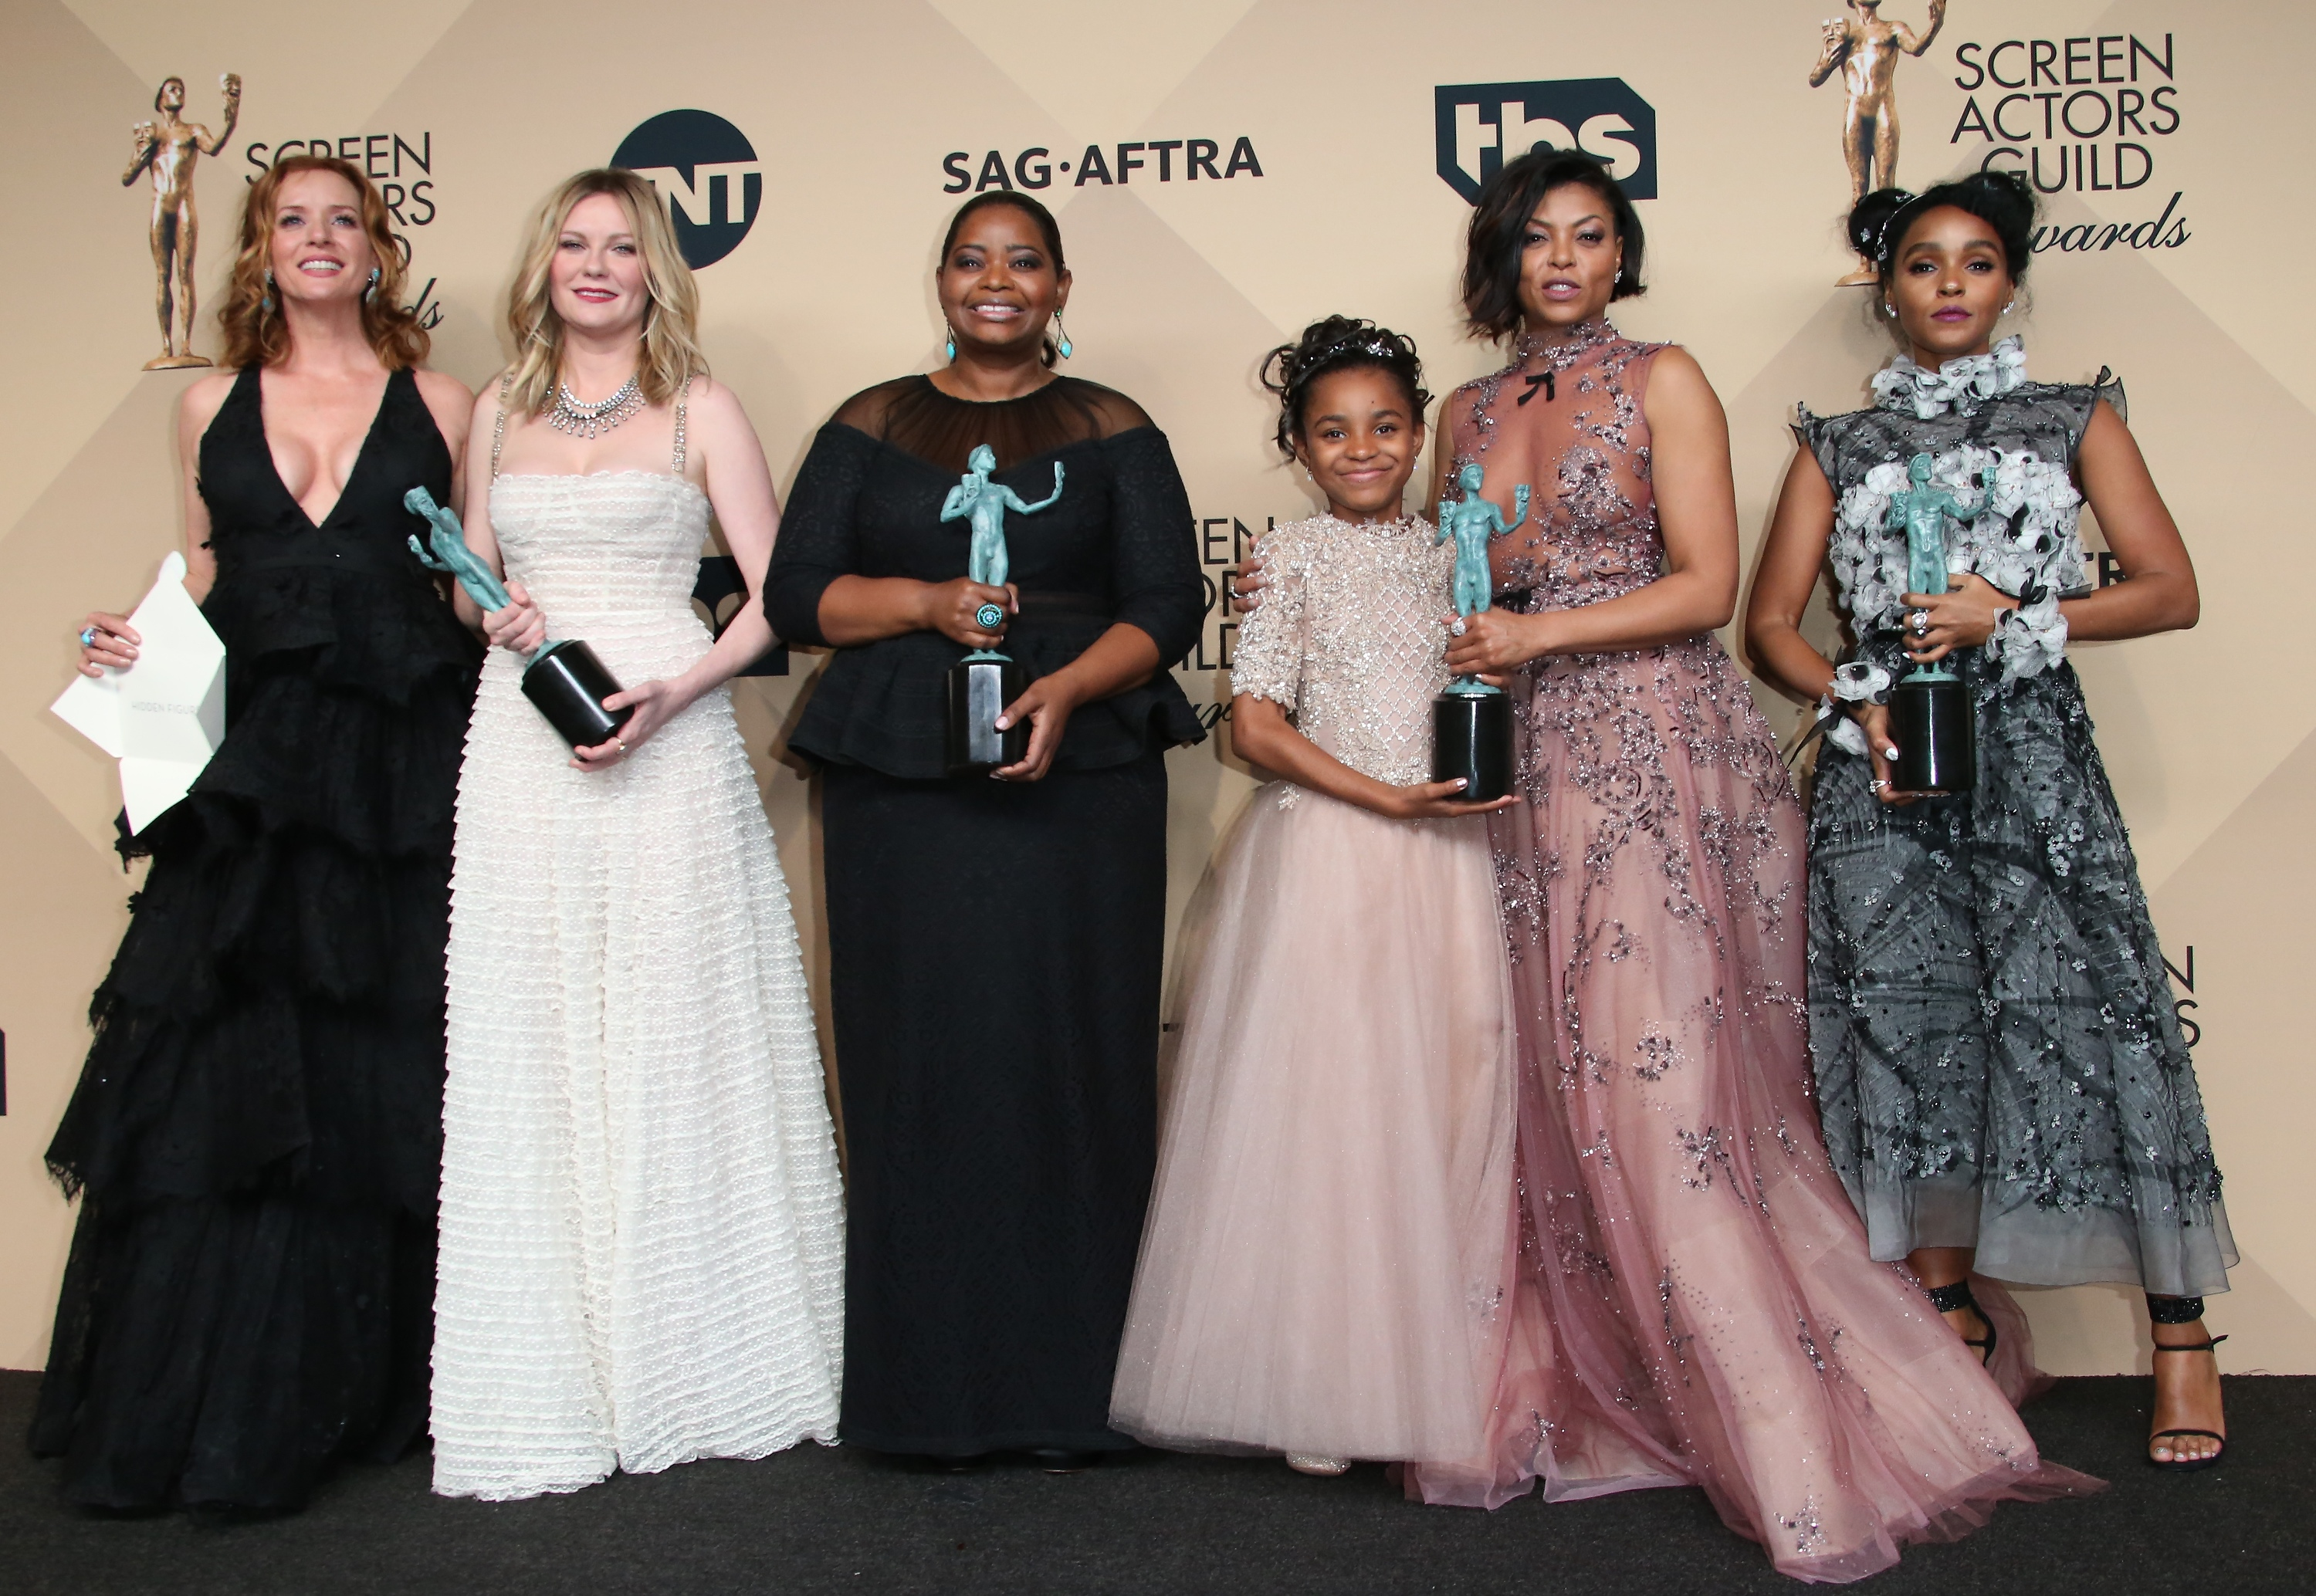 Where are the SAG Awards held? Here's the scoop